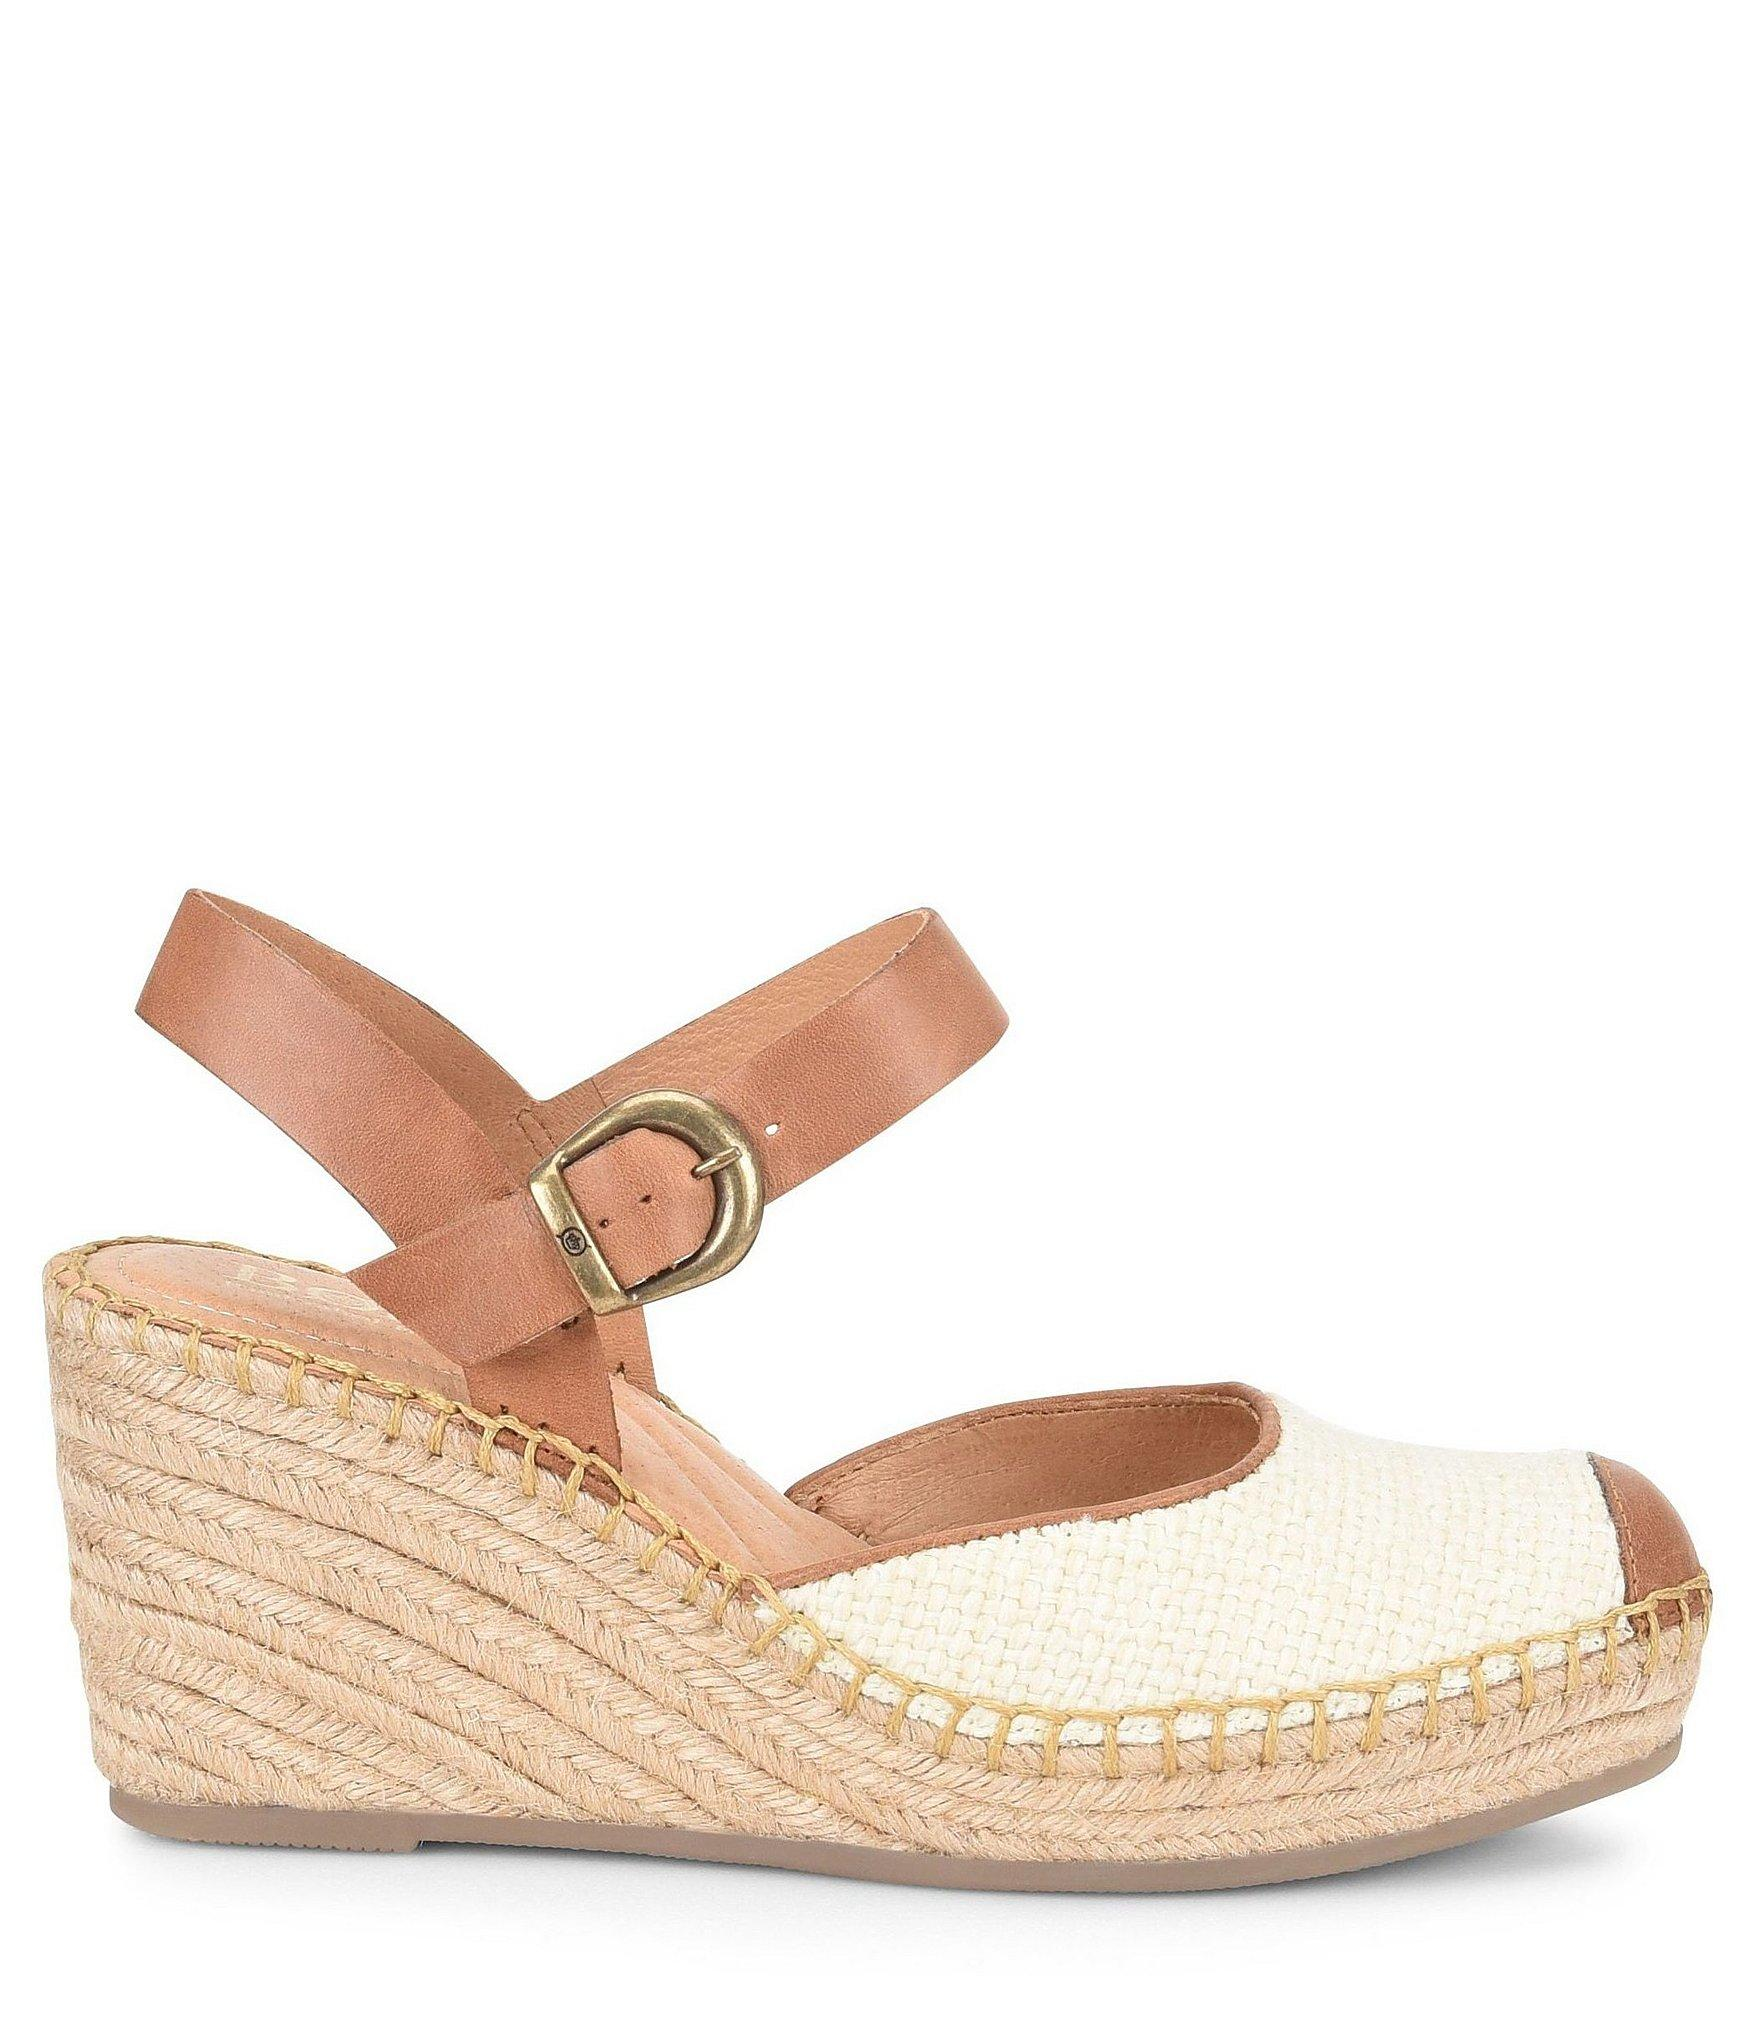 e15d22a1ea86 Born - Brown Guadalupe Leather Wrapped Wedge Espadrilles - Lyst. View  fullscreen